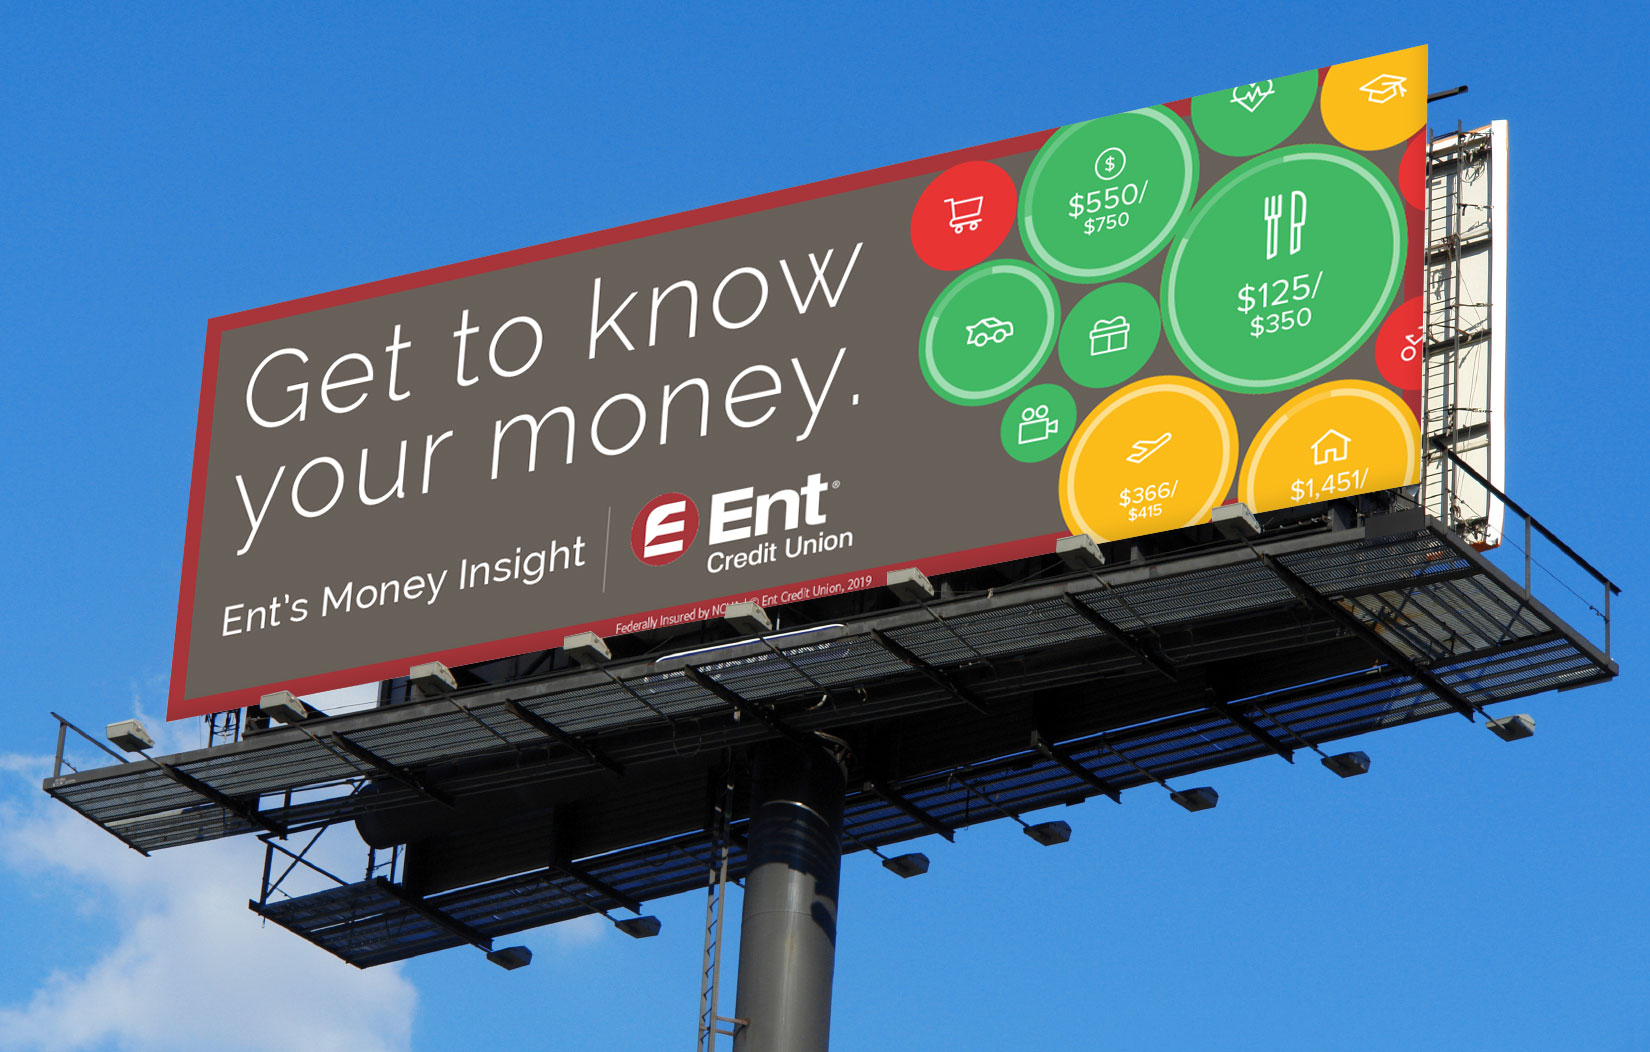 Ent's Money Insight Billboard.jpg